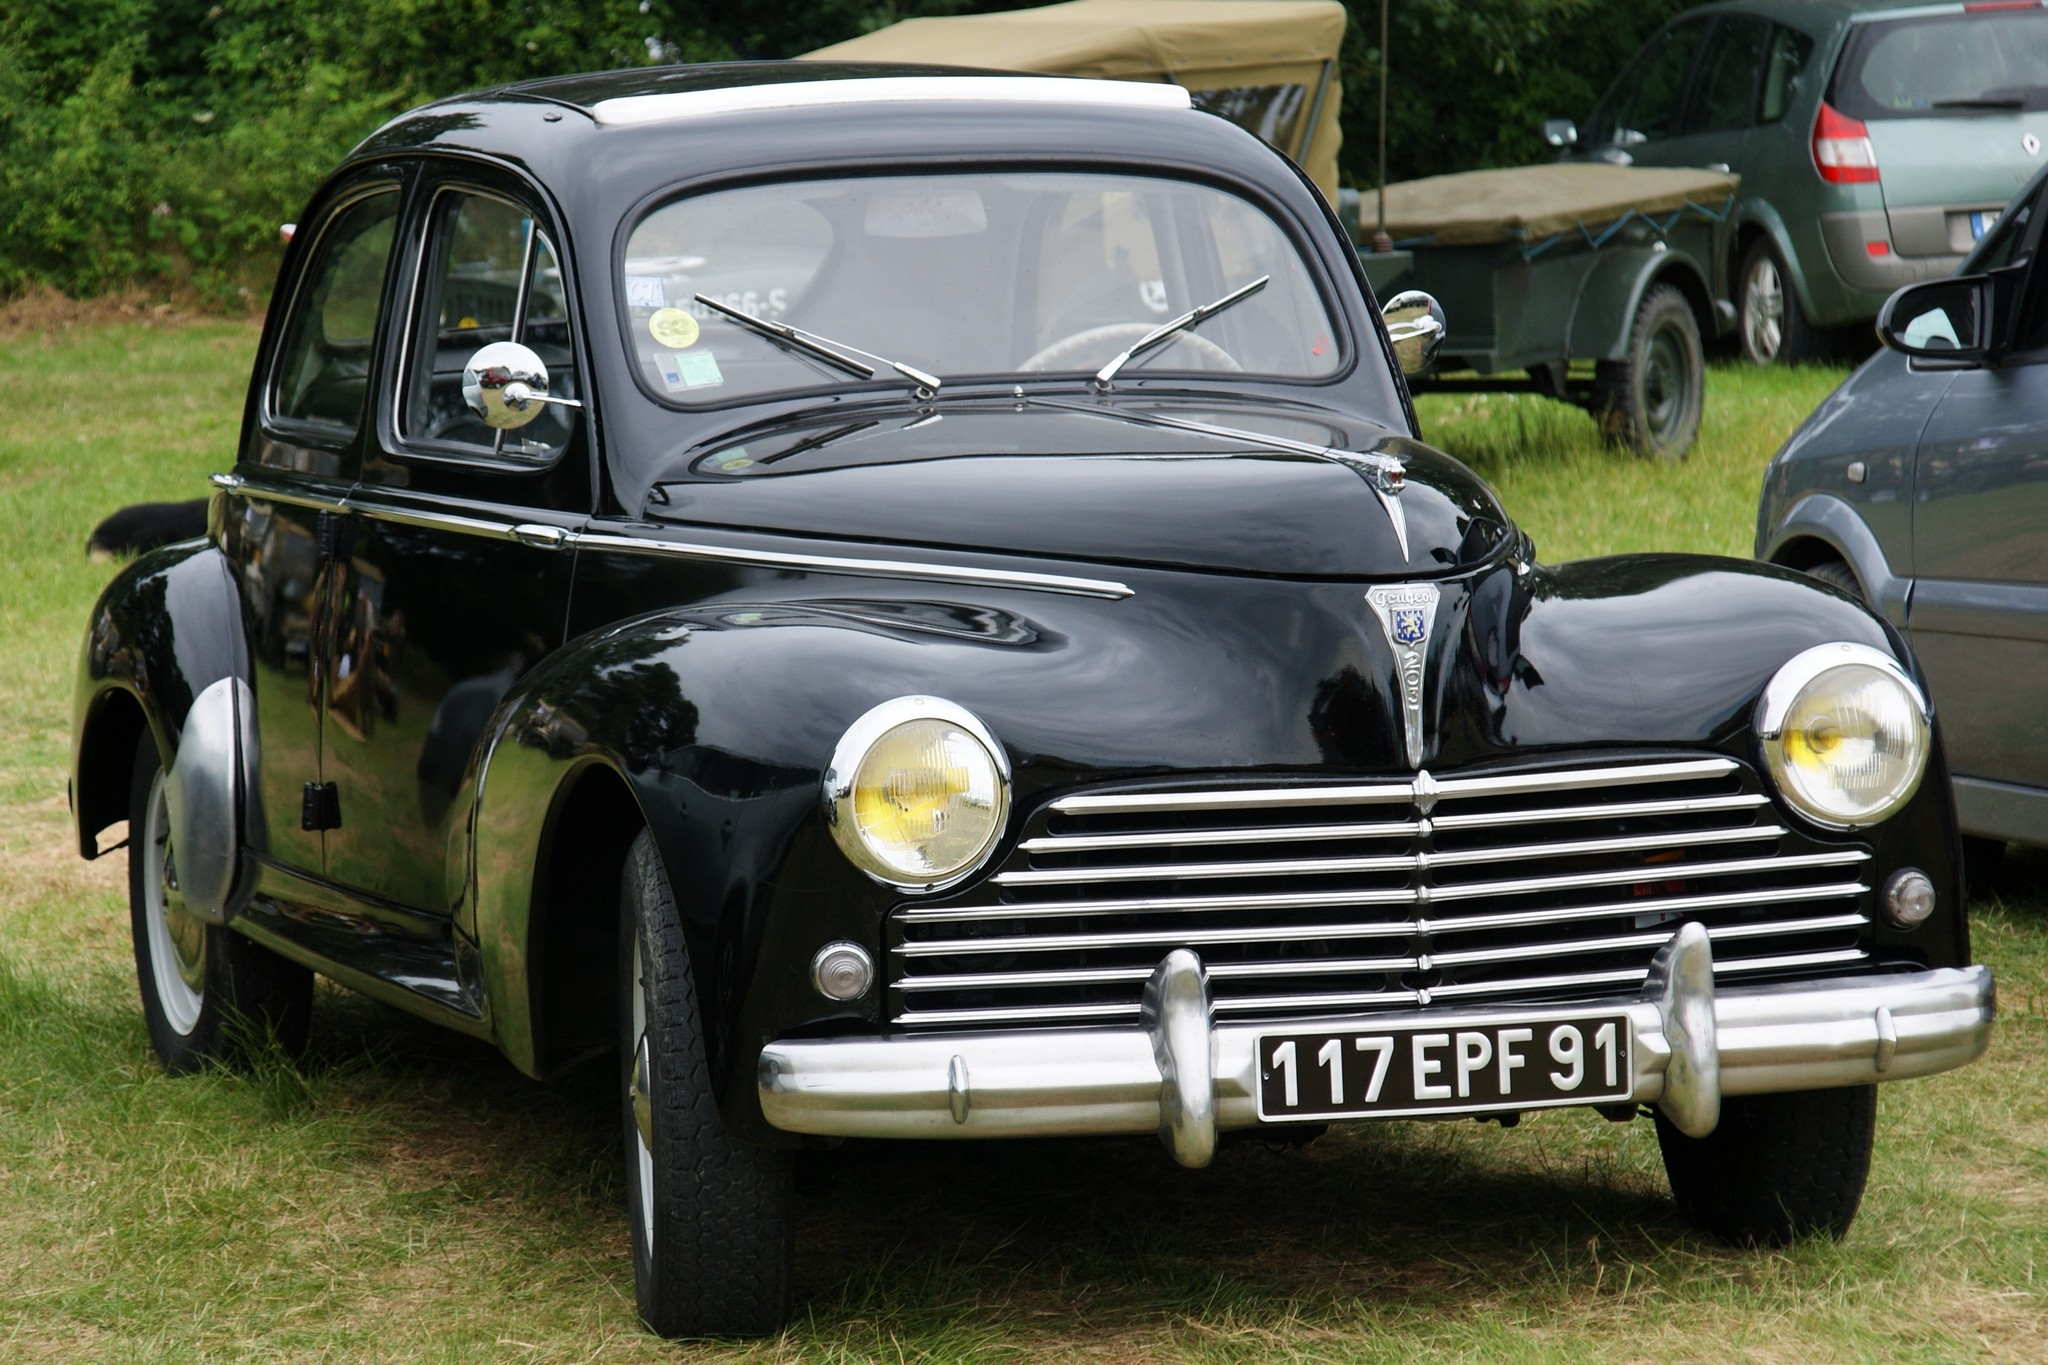 http://upload.wikimedia.org/wikipedia/commons/5/57/Peugeot_203_-_Flickr_-_besopha.jpg